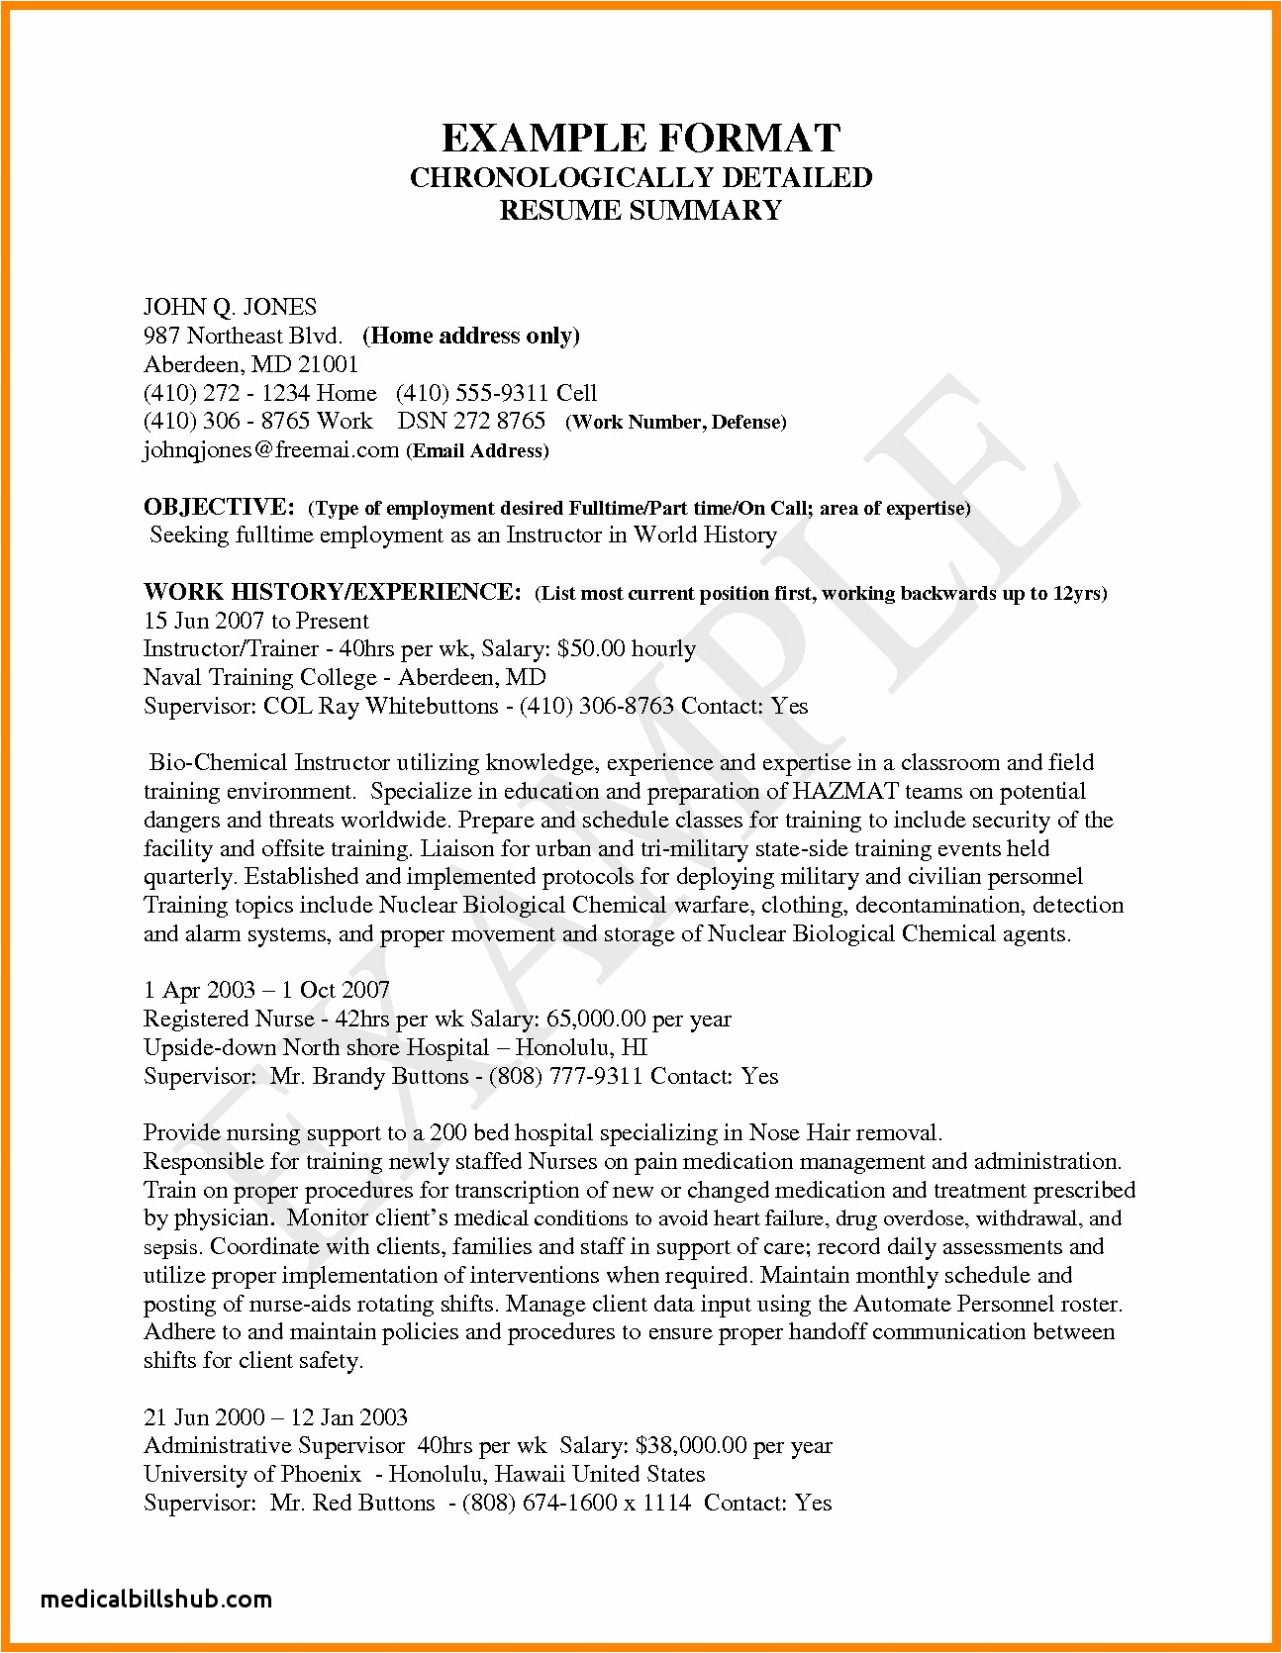 Resume for Nursing Student with No Experience - Example Federal Resume Lovely Unique Resume for Highschool